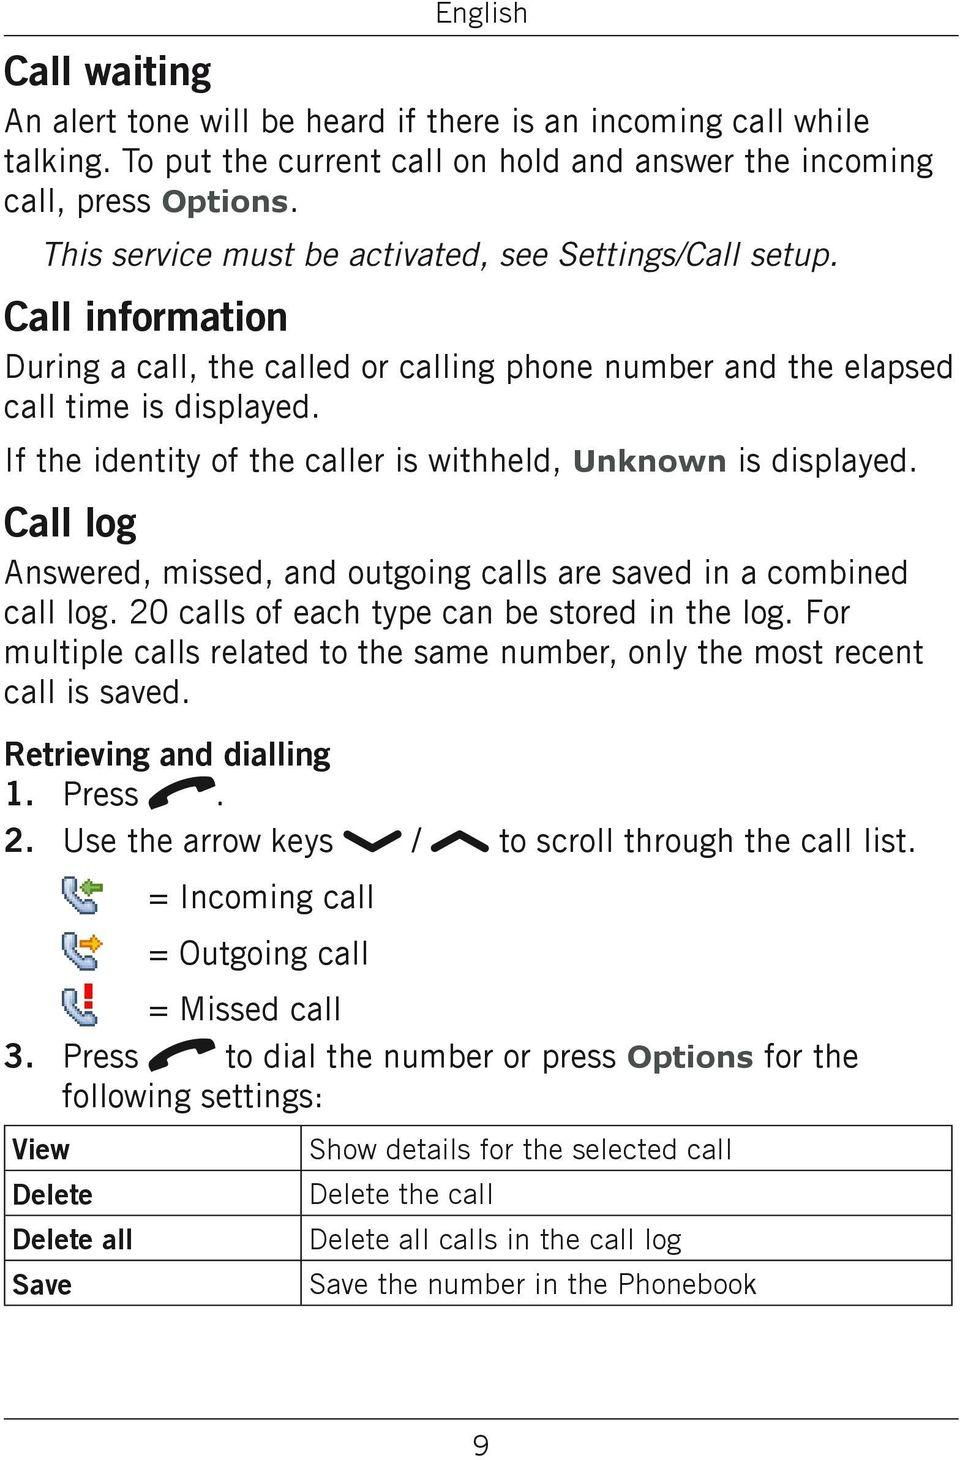 If the identity of the caller is withheld, Unknown is displayed. Call log Answered, missed, and outgoing calls are saved in a combined call log. 20 calls of each type can be stored in the log.